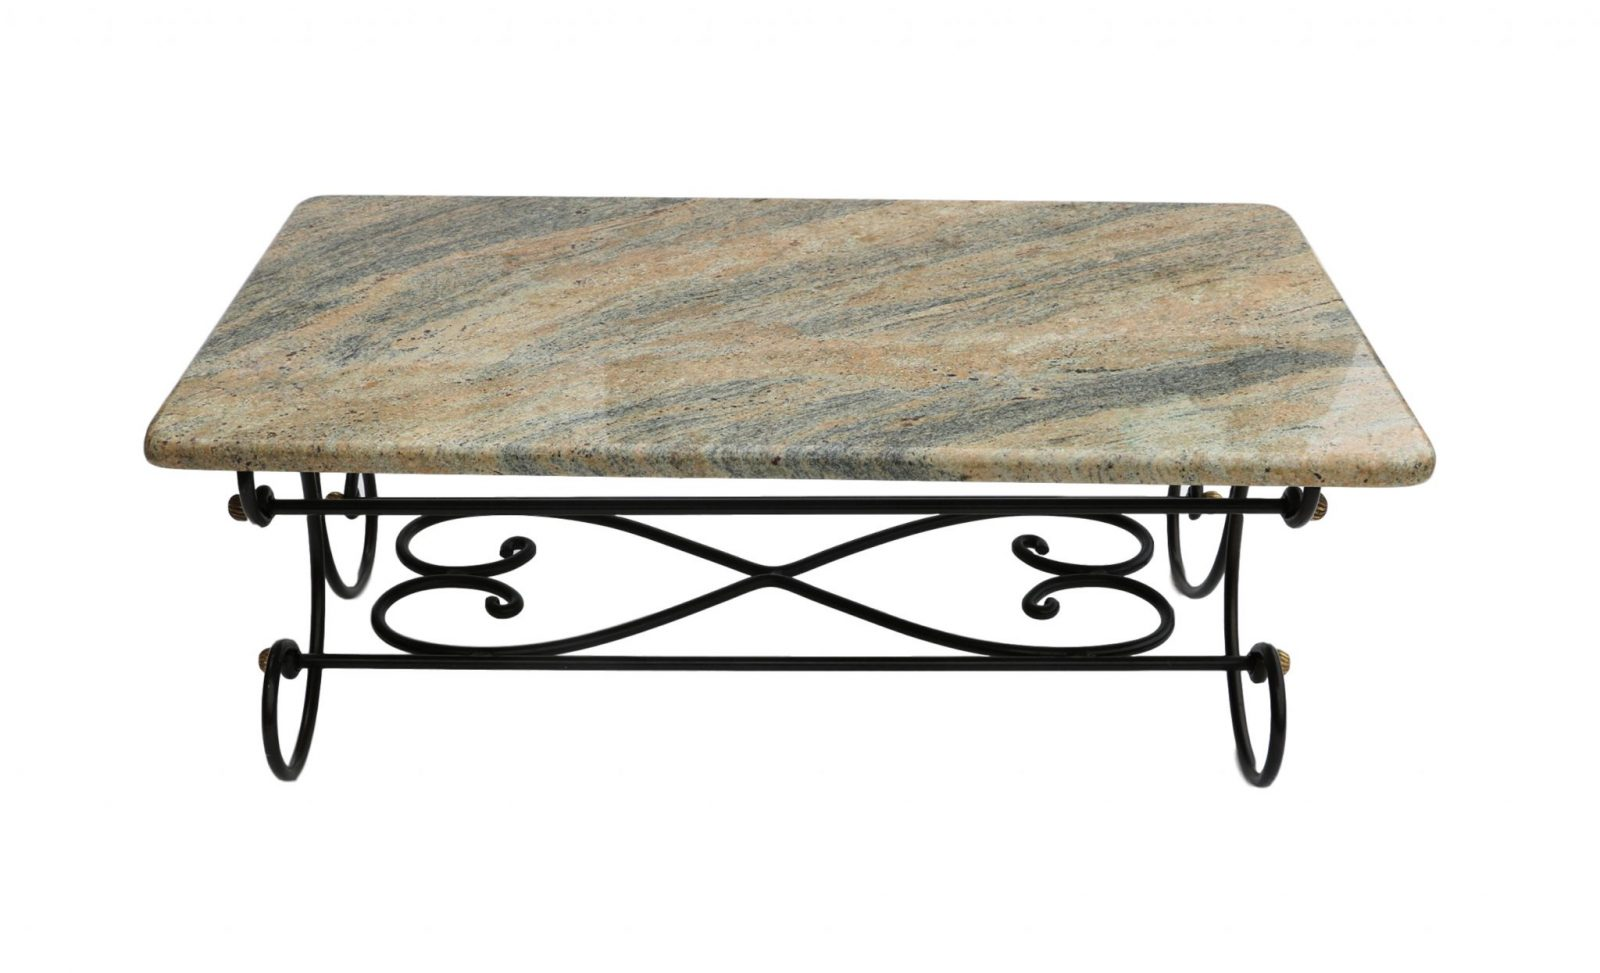 Granite topped coffee table wrought iron metal base for Metal coffee table with stone top